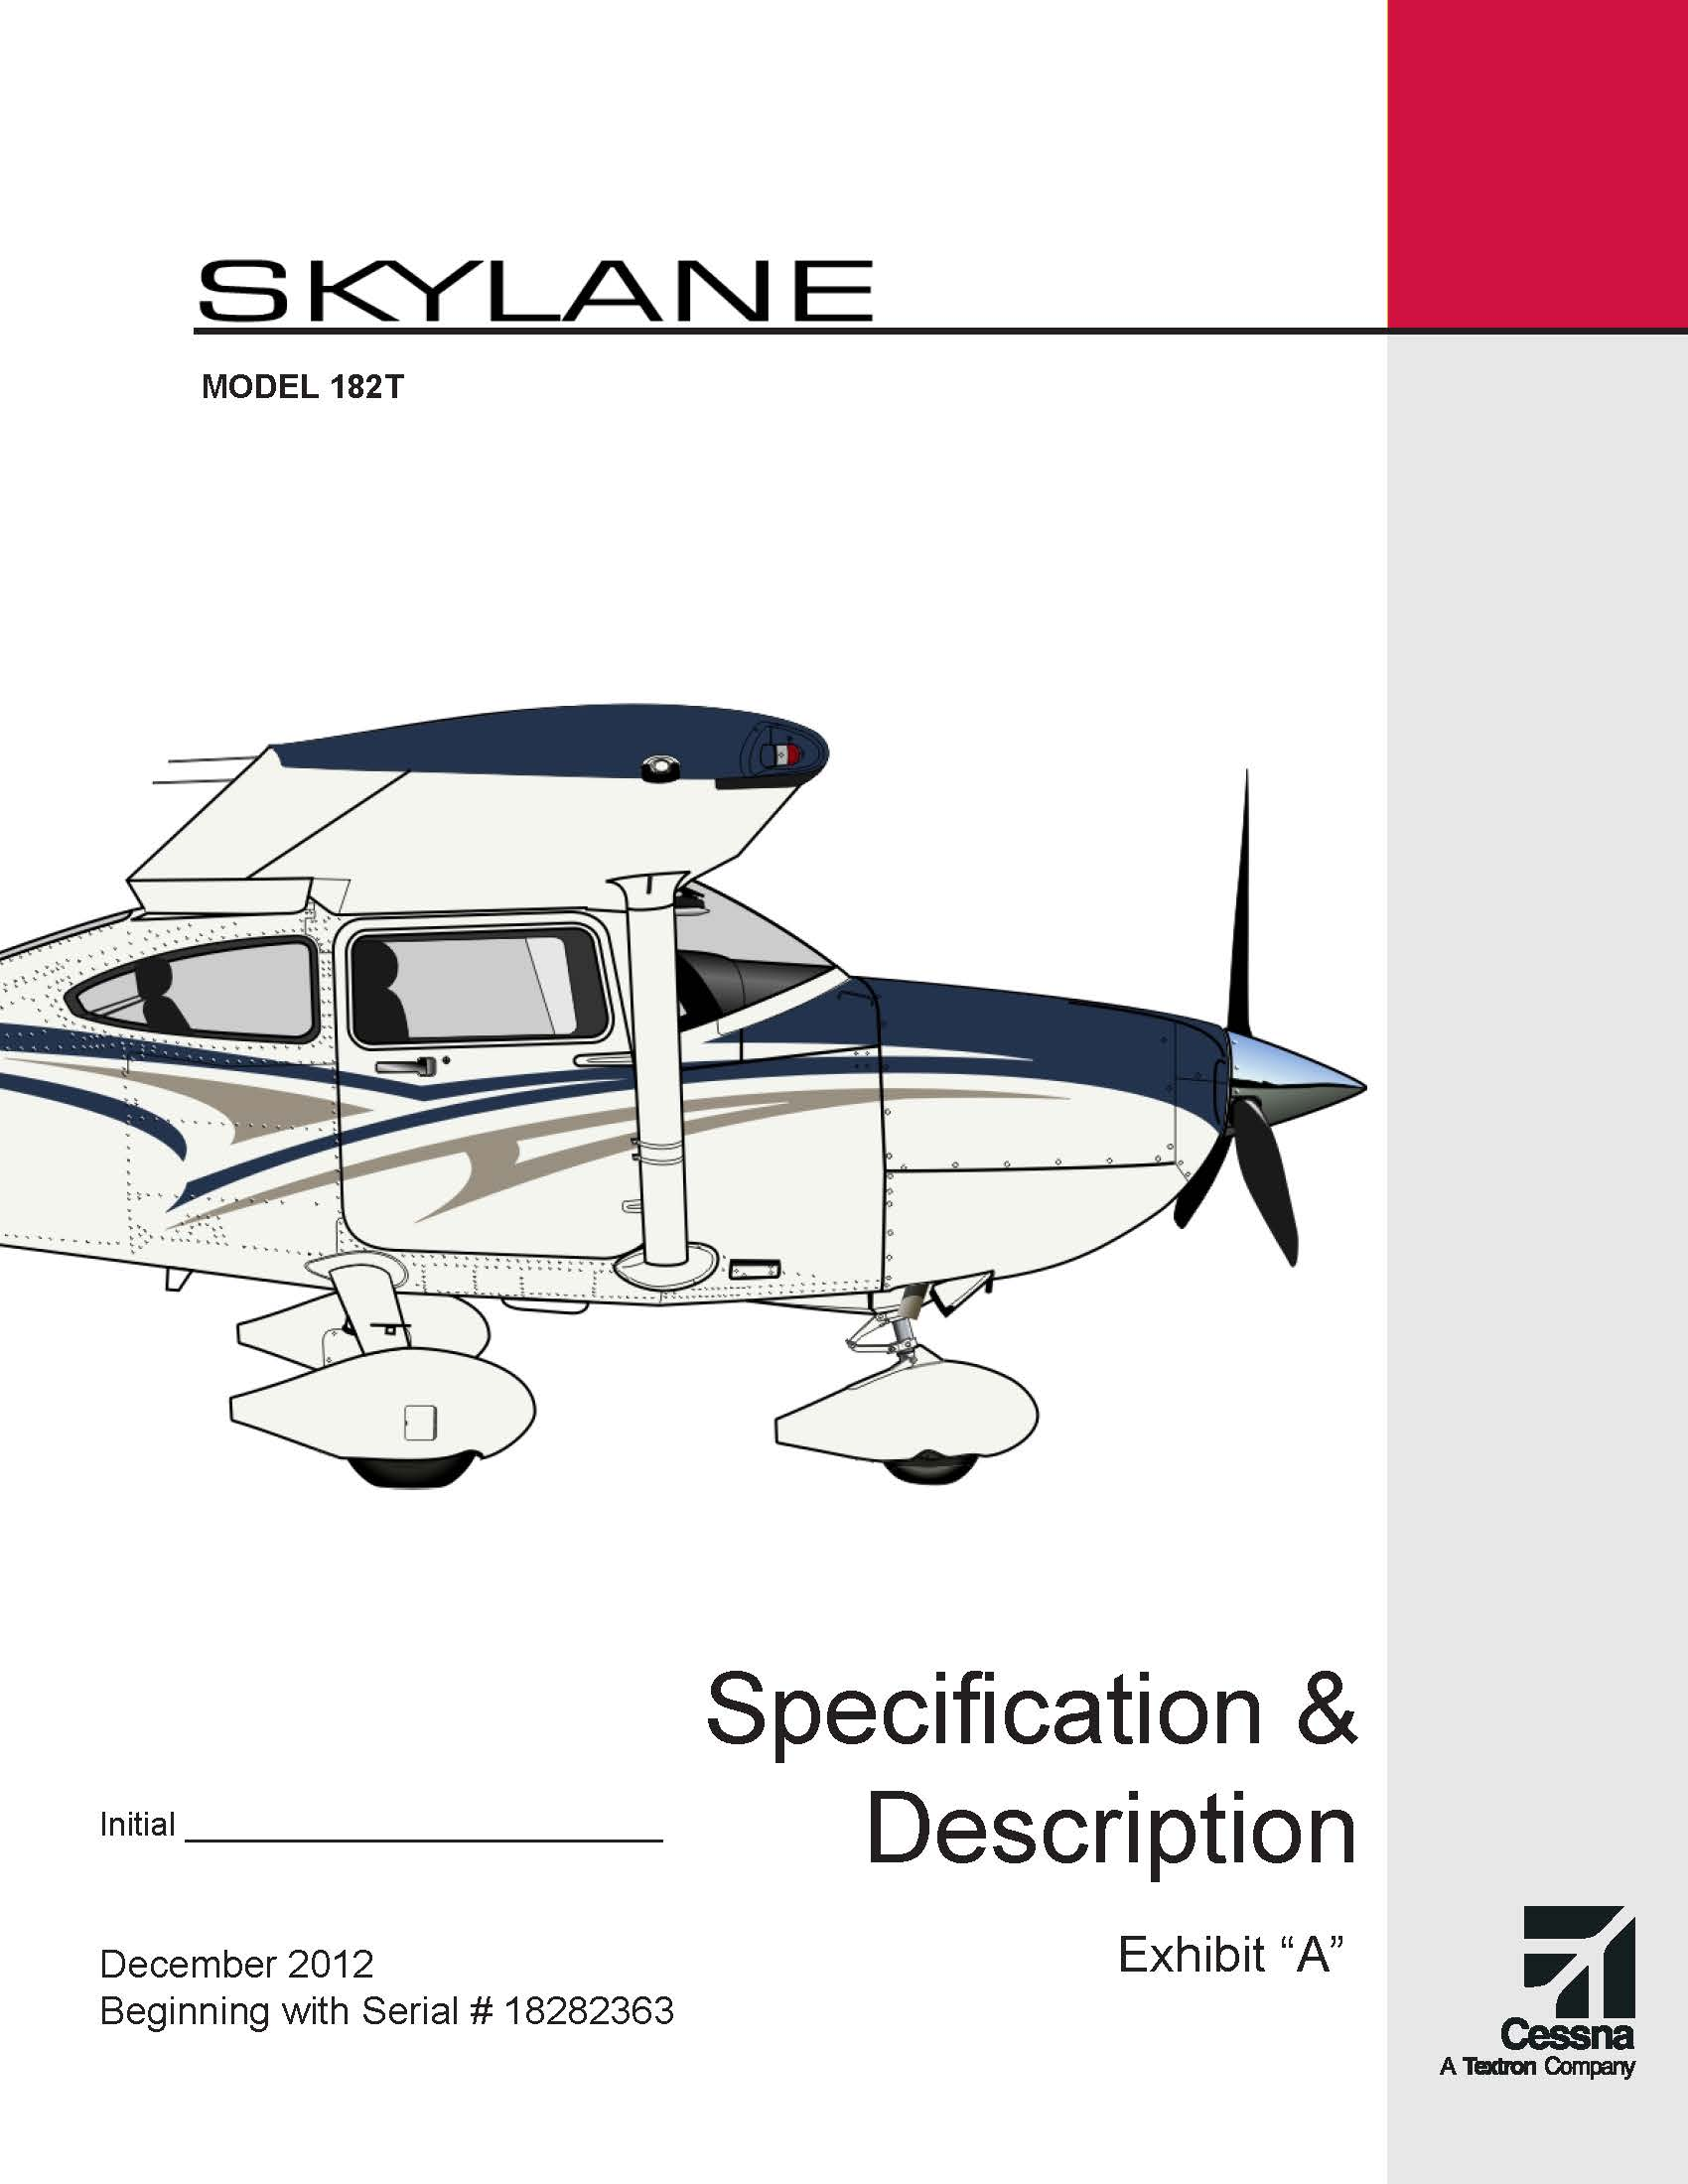 Cessna Skylane specification and description